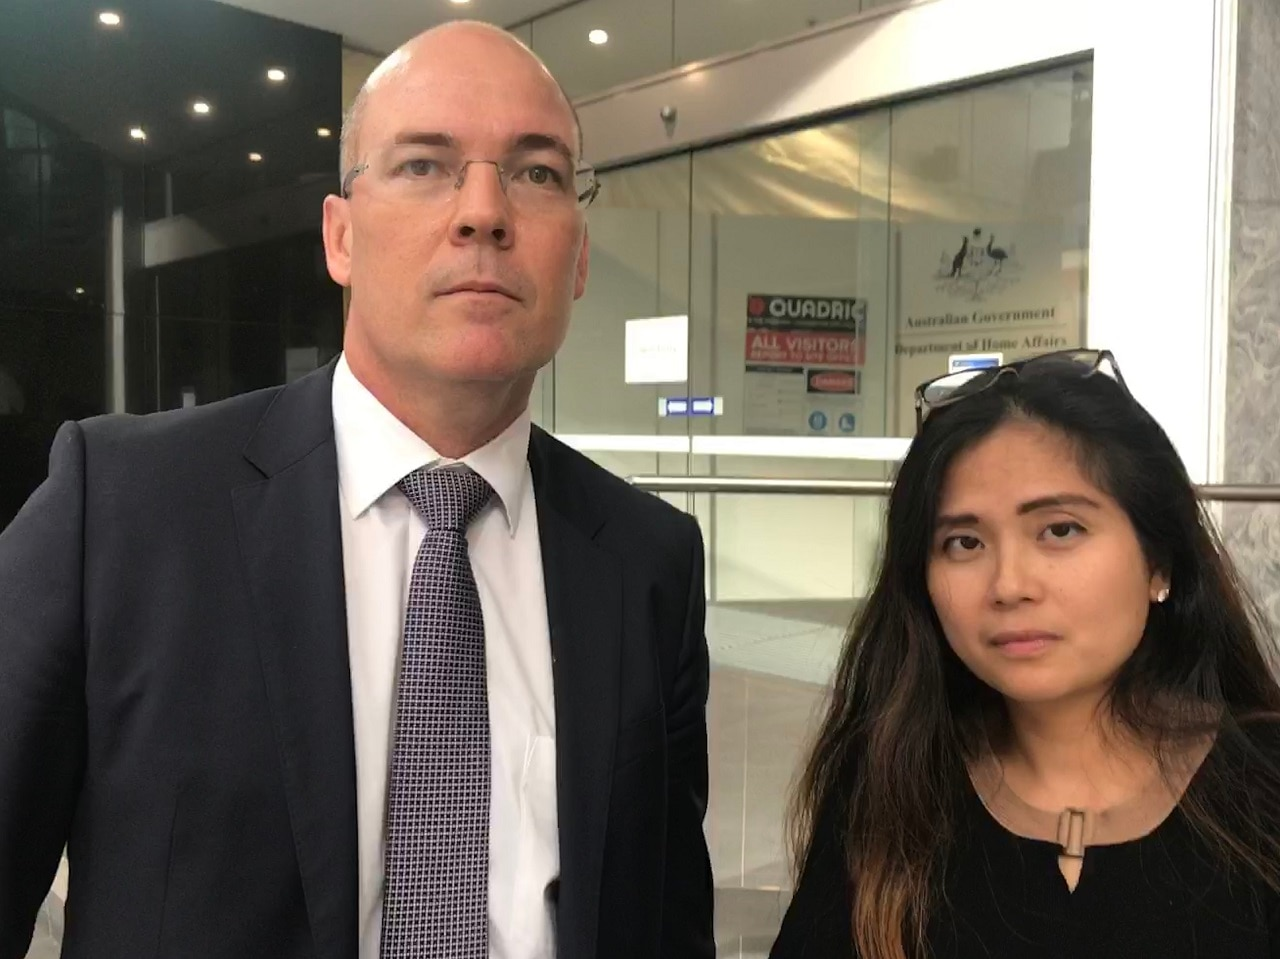 Bernadette Romulo (right) with her lawyer, Angus Francis.